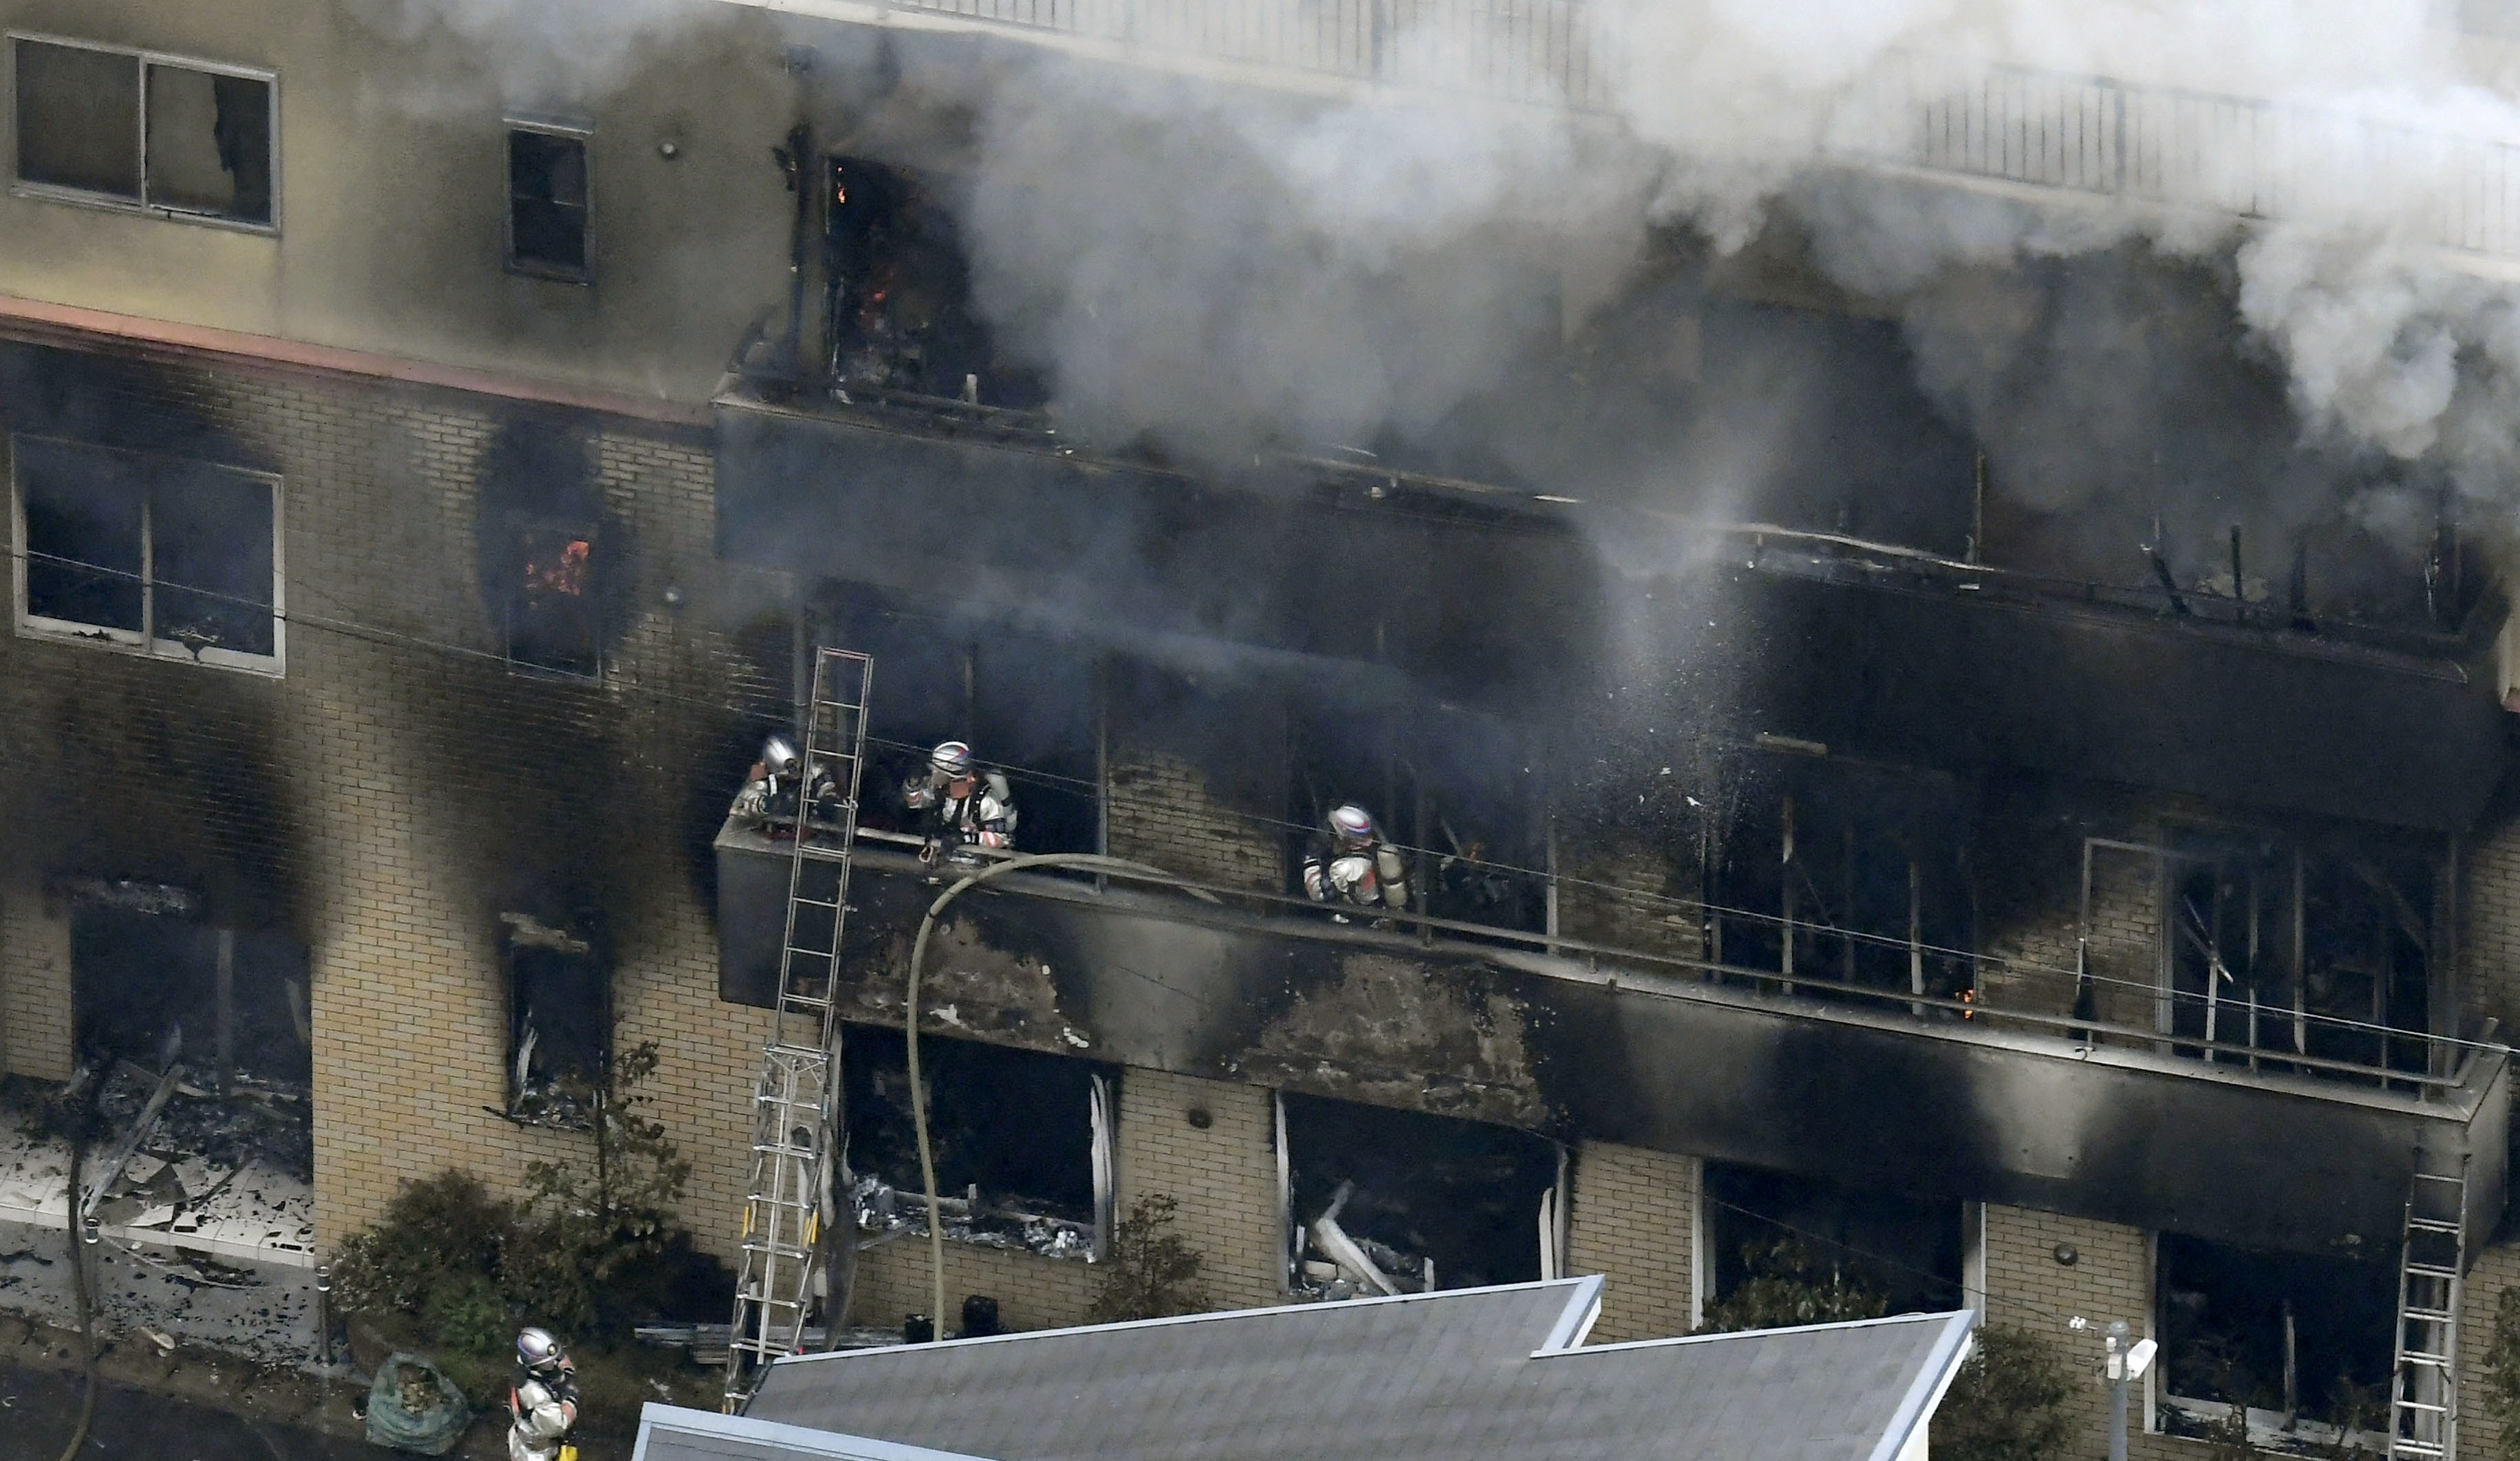 Over 20 Feared Dead or Presumed Dead in Arson at Japan Studio